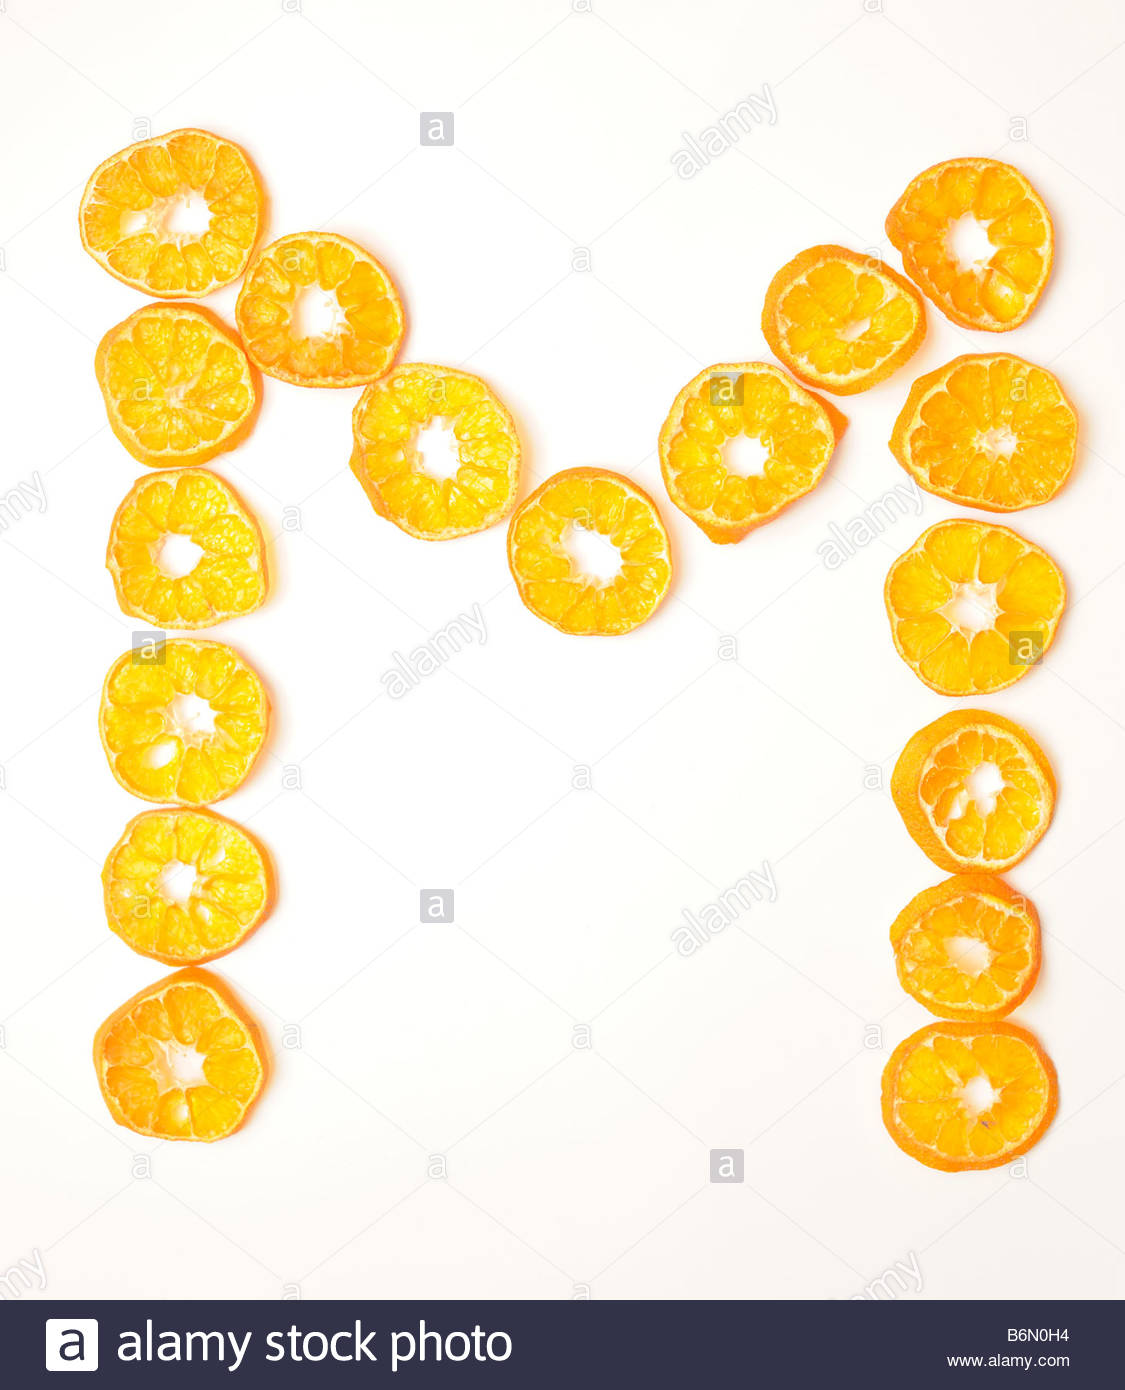 Foodfont Food Font Mandarin Slices Letter M White Background Cut Outs Search String Pbabcm